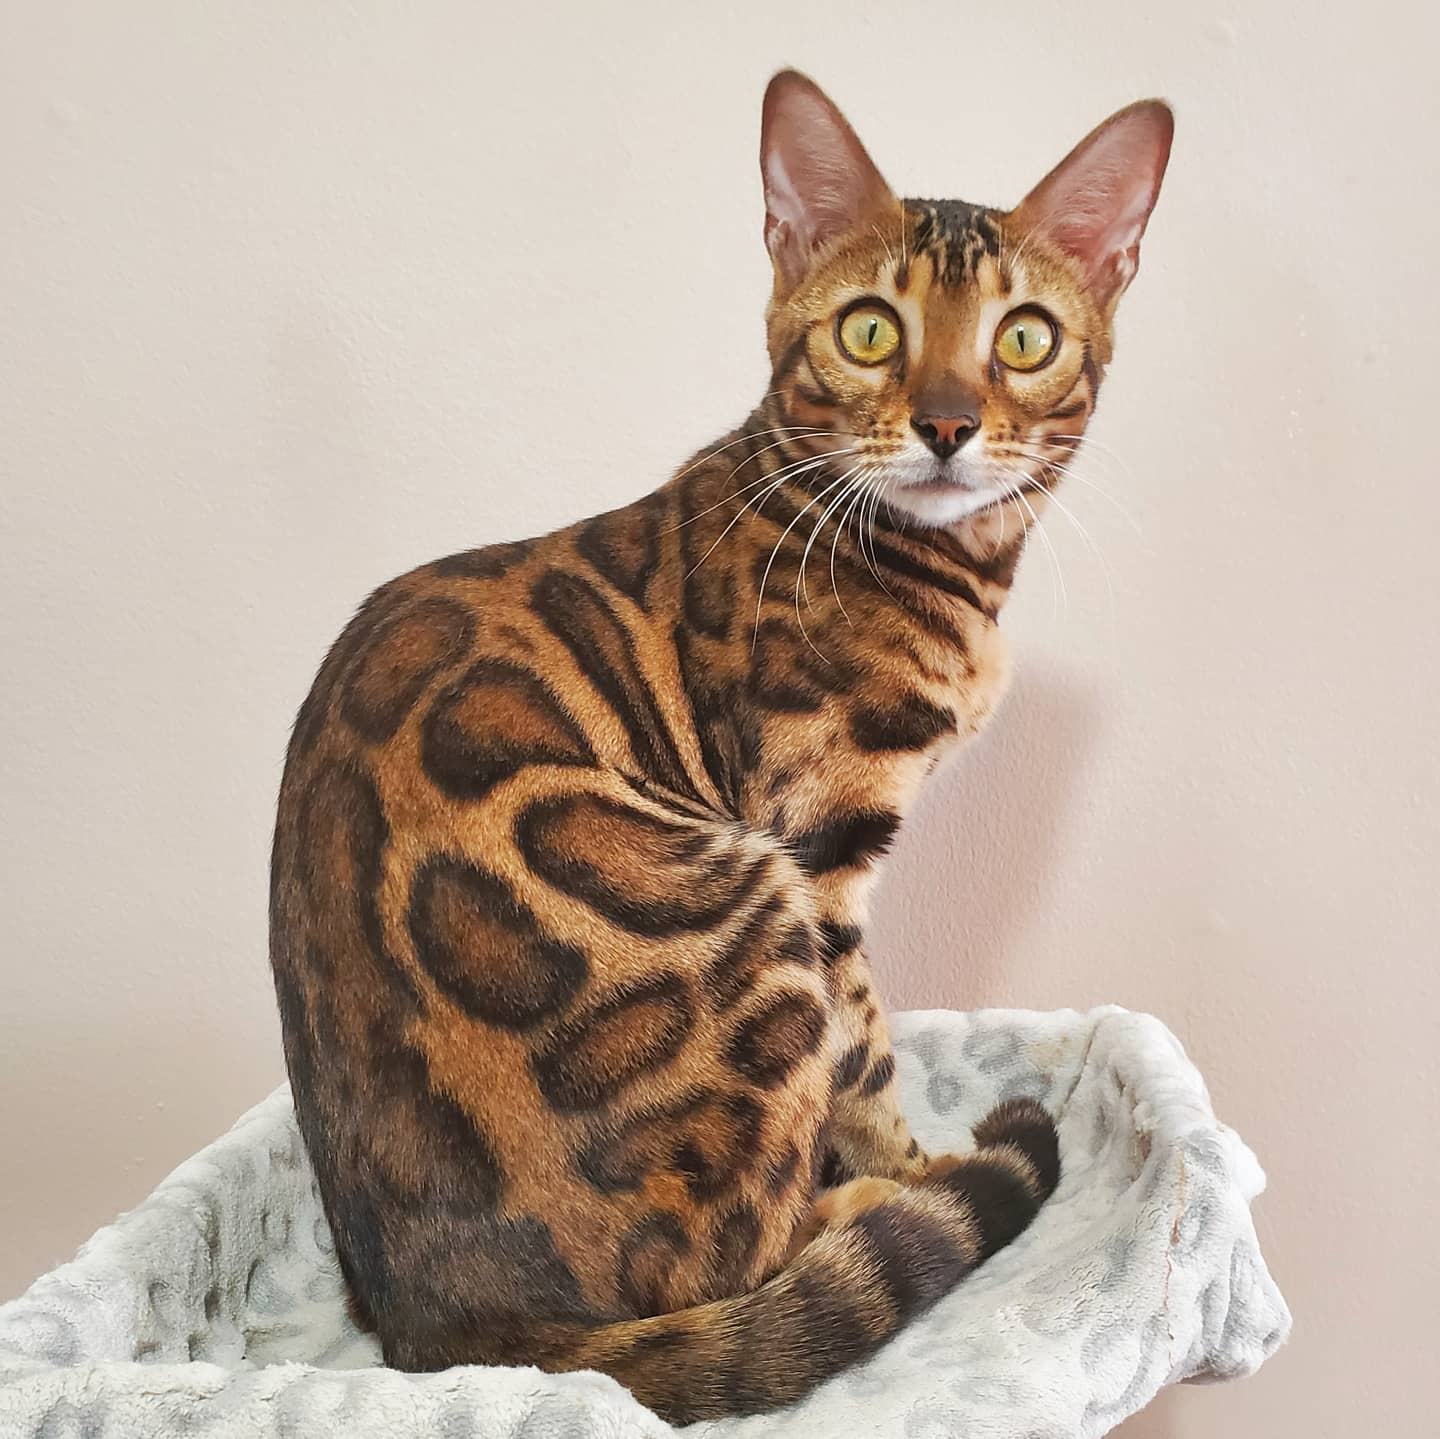 Does the space of your home affect a Bengal cat's quality of life?